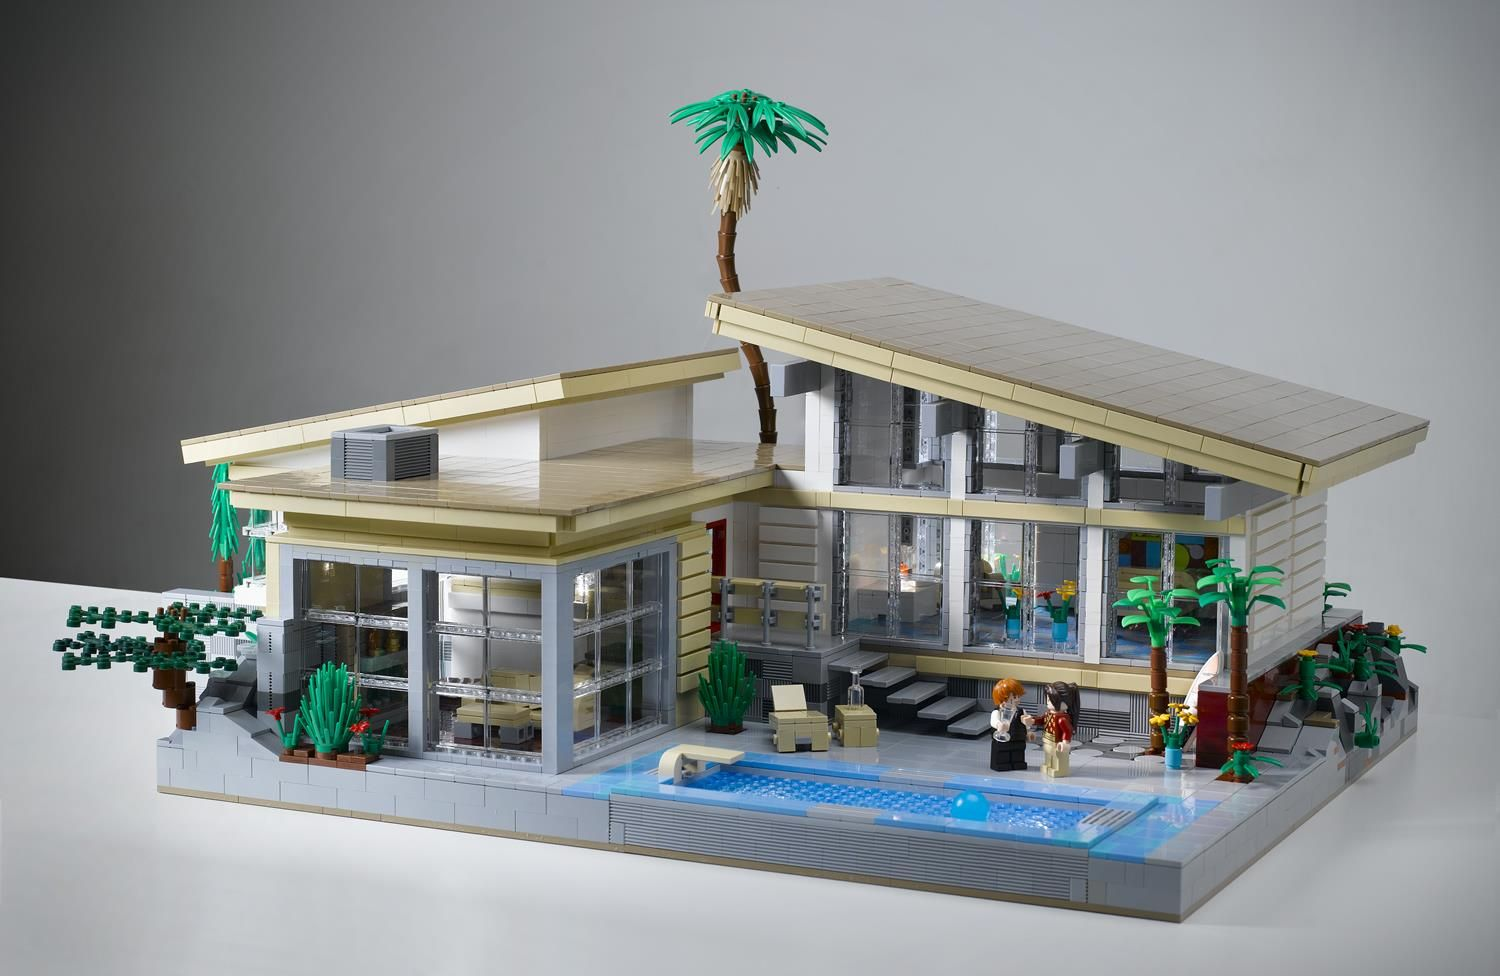 One world architecture blog lego modern home design House architecture design online